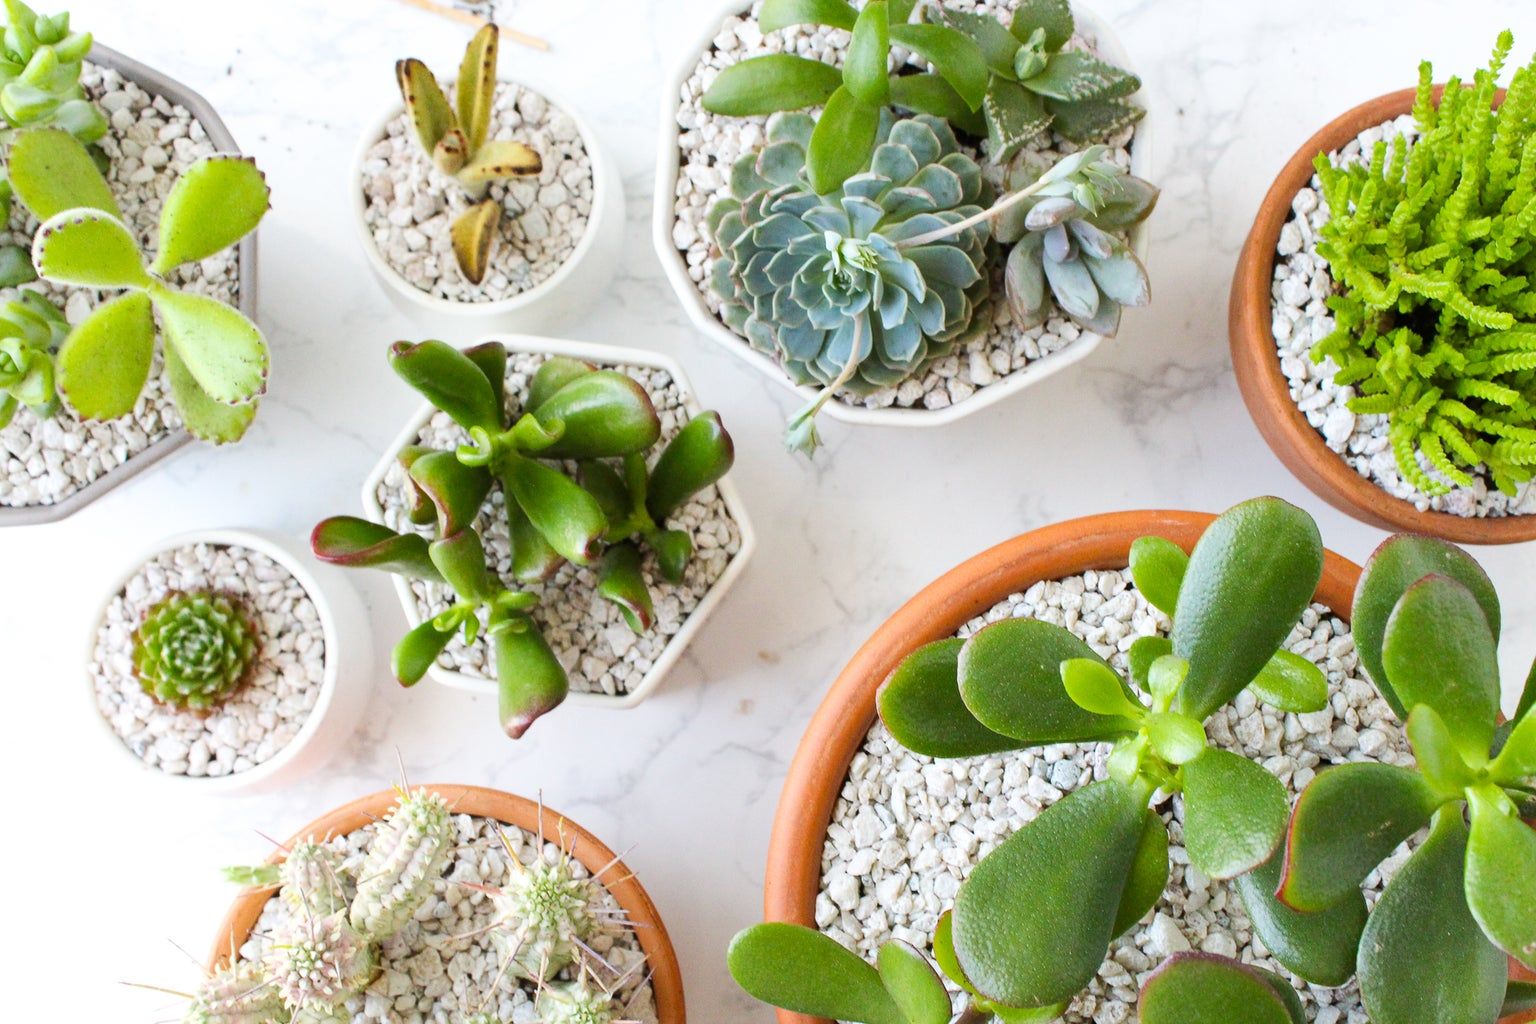 When to Use a Top Dressing in Your Pots